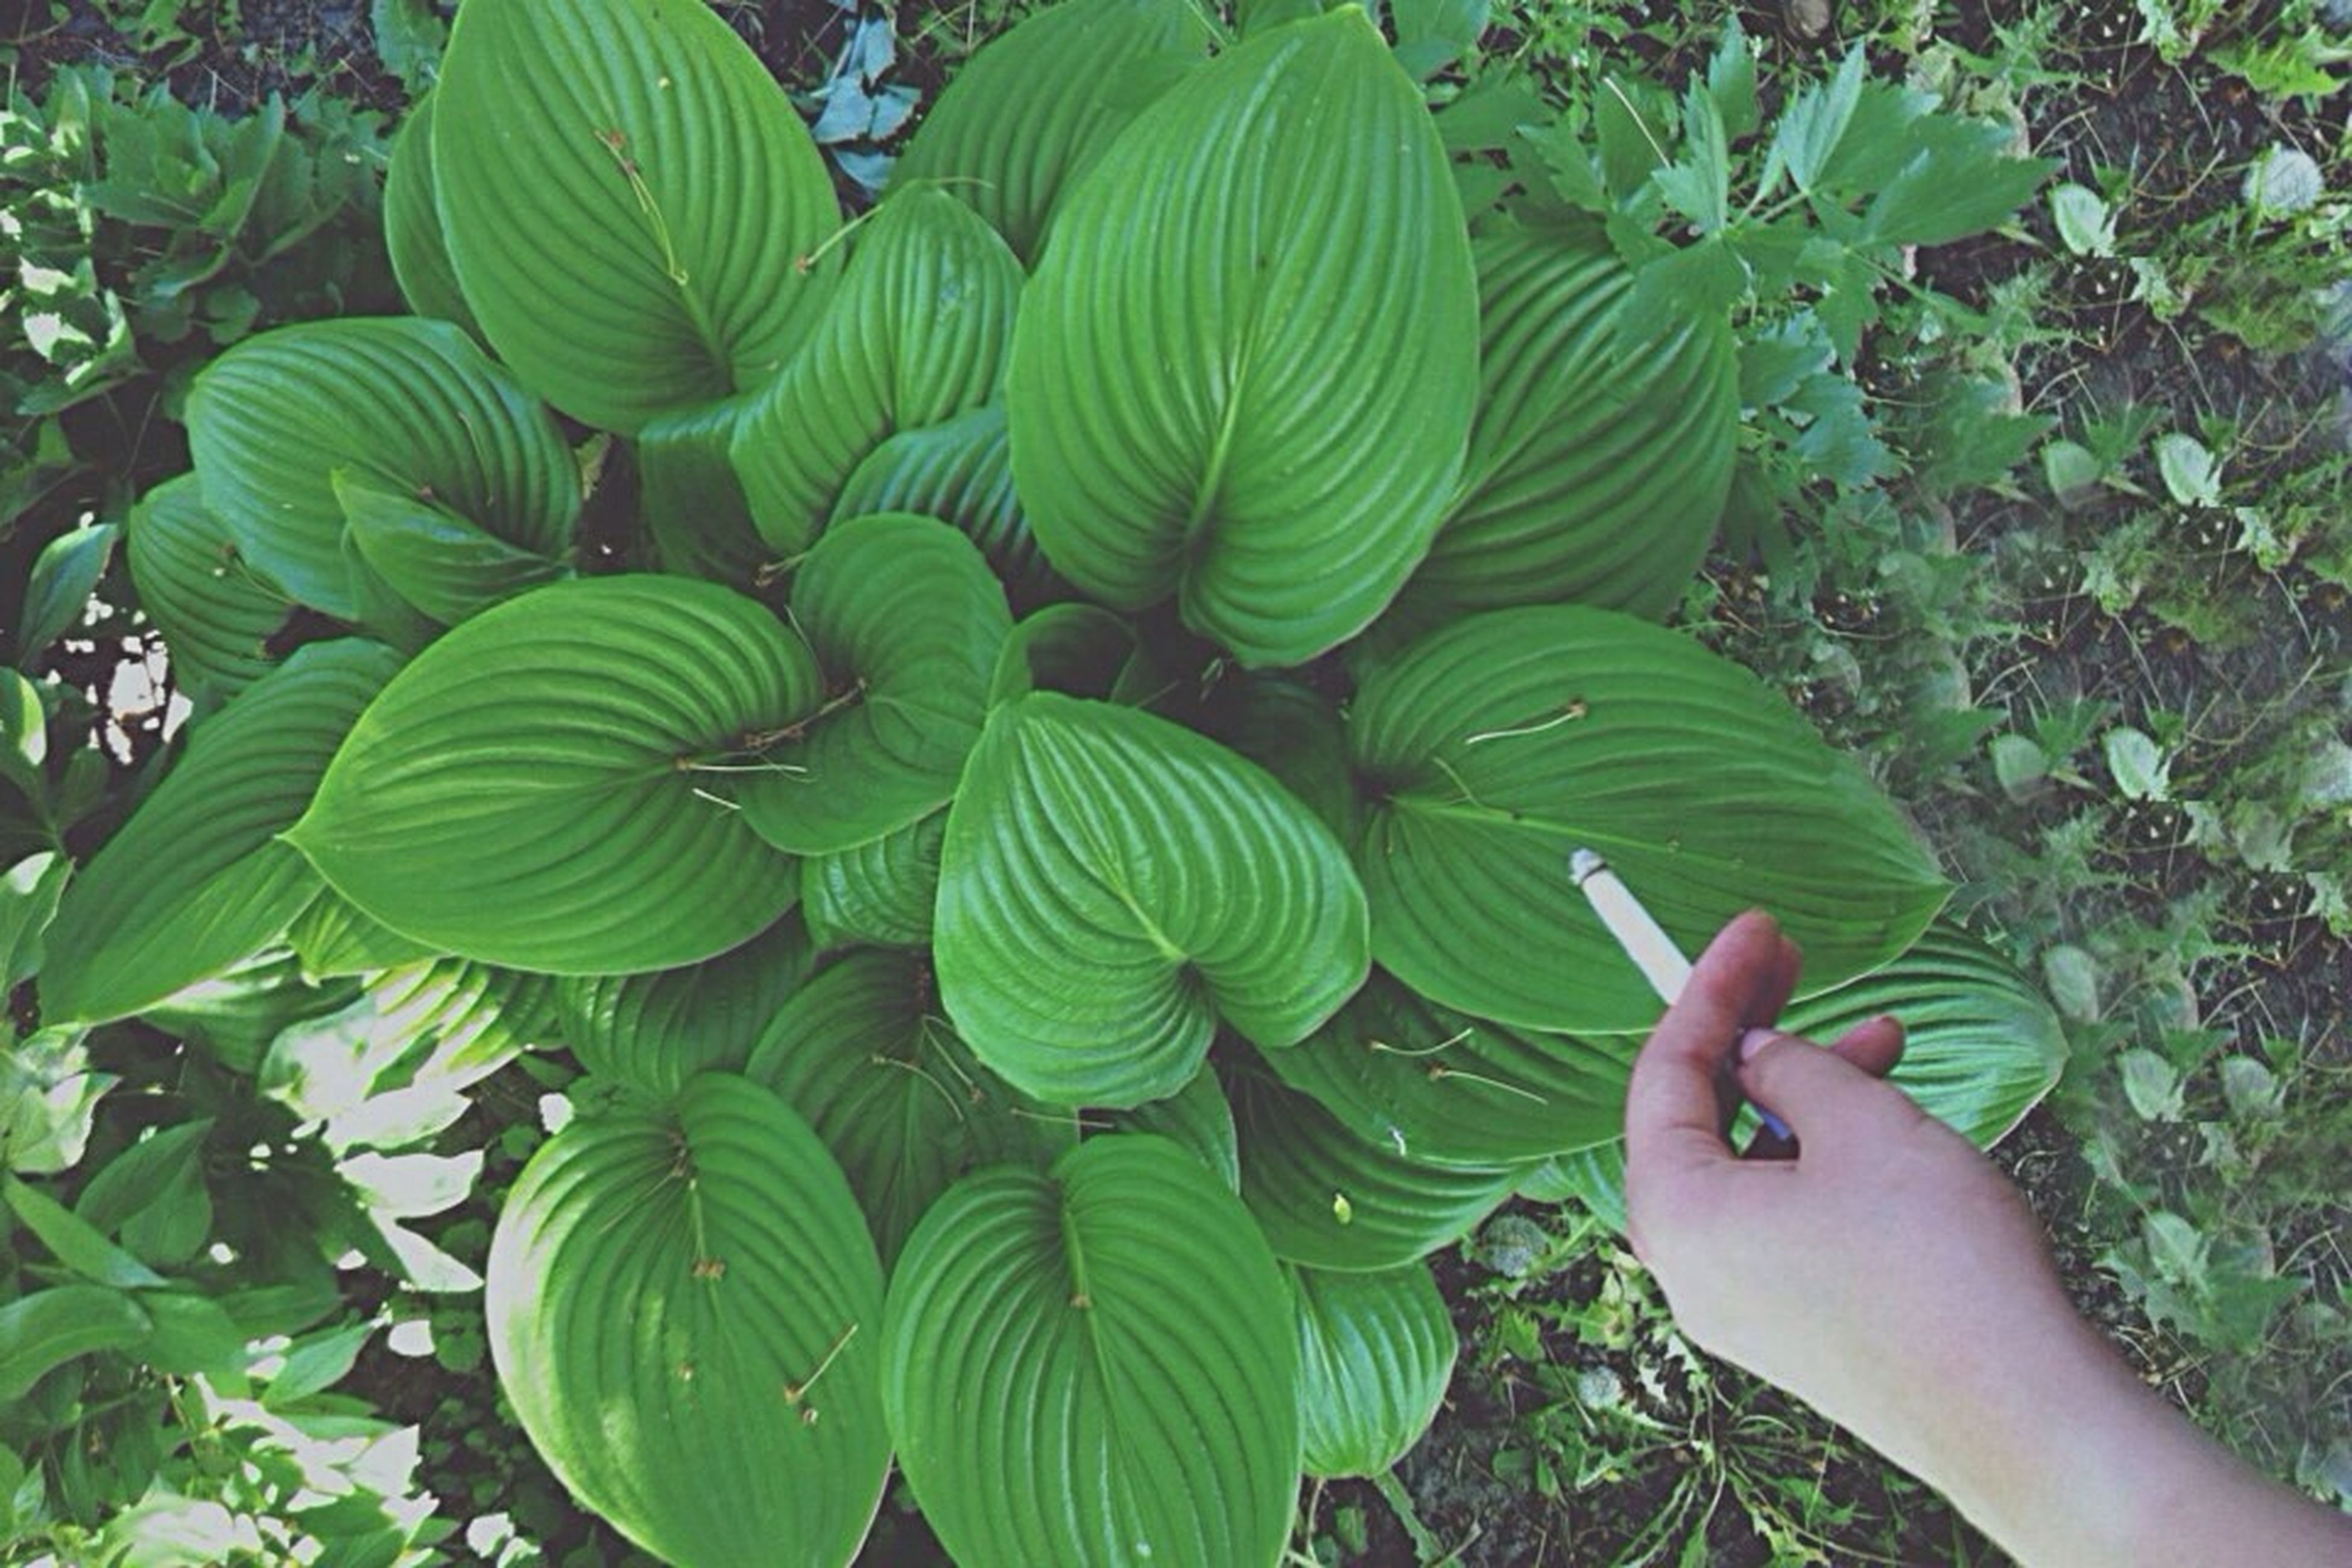 green color, leaf, growth, plant, person, nature, part of, beauty in nature, high angle view, unrecognizable person, day, outdoors, freshness, close-up, cropped, leisure activity, lifestyles